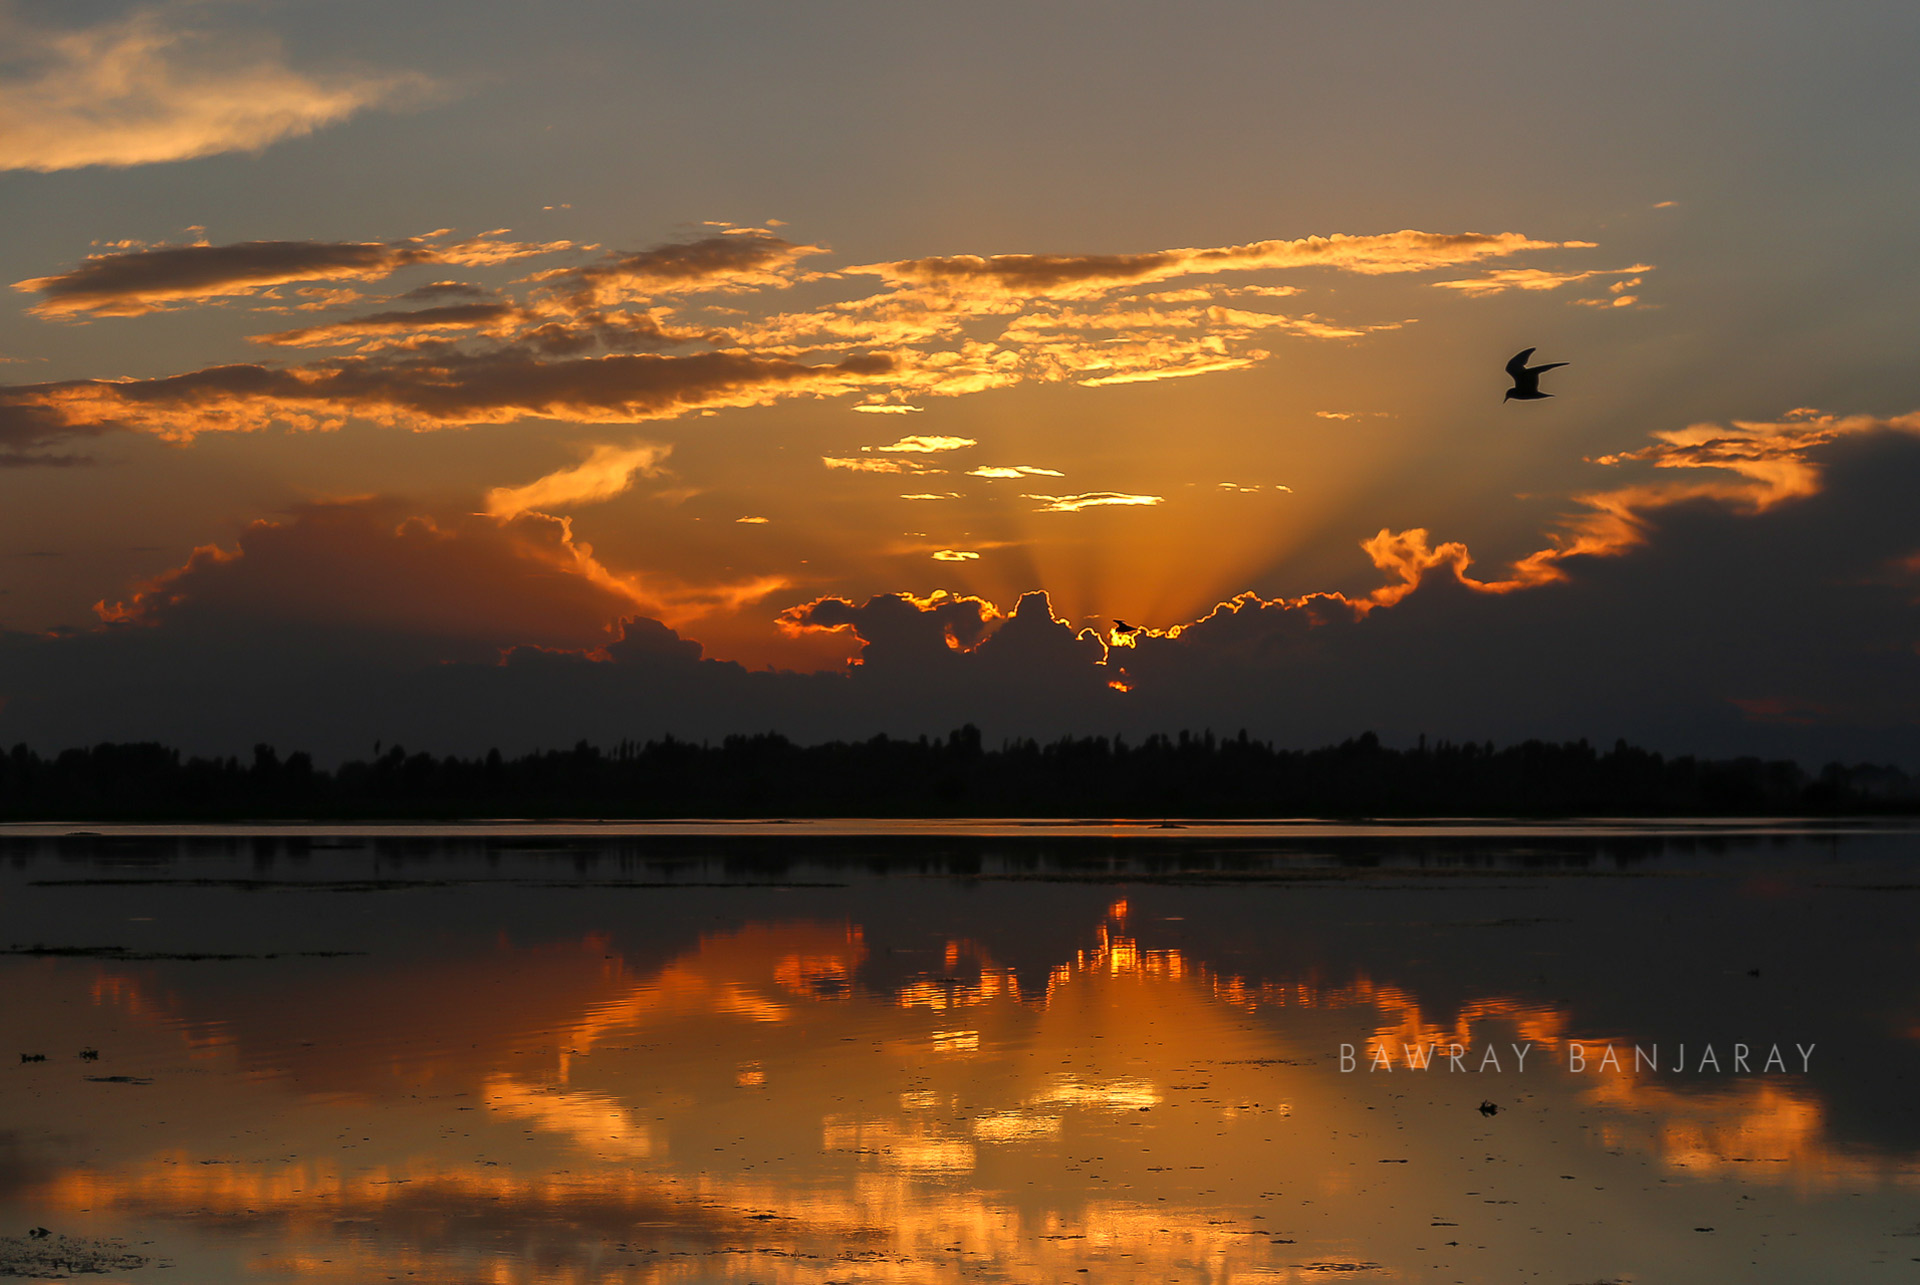 Sunset at Dal Lake by Bawray Banjaray